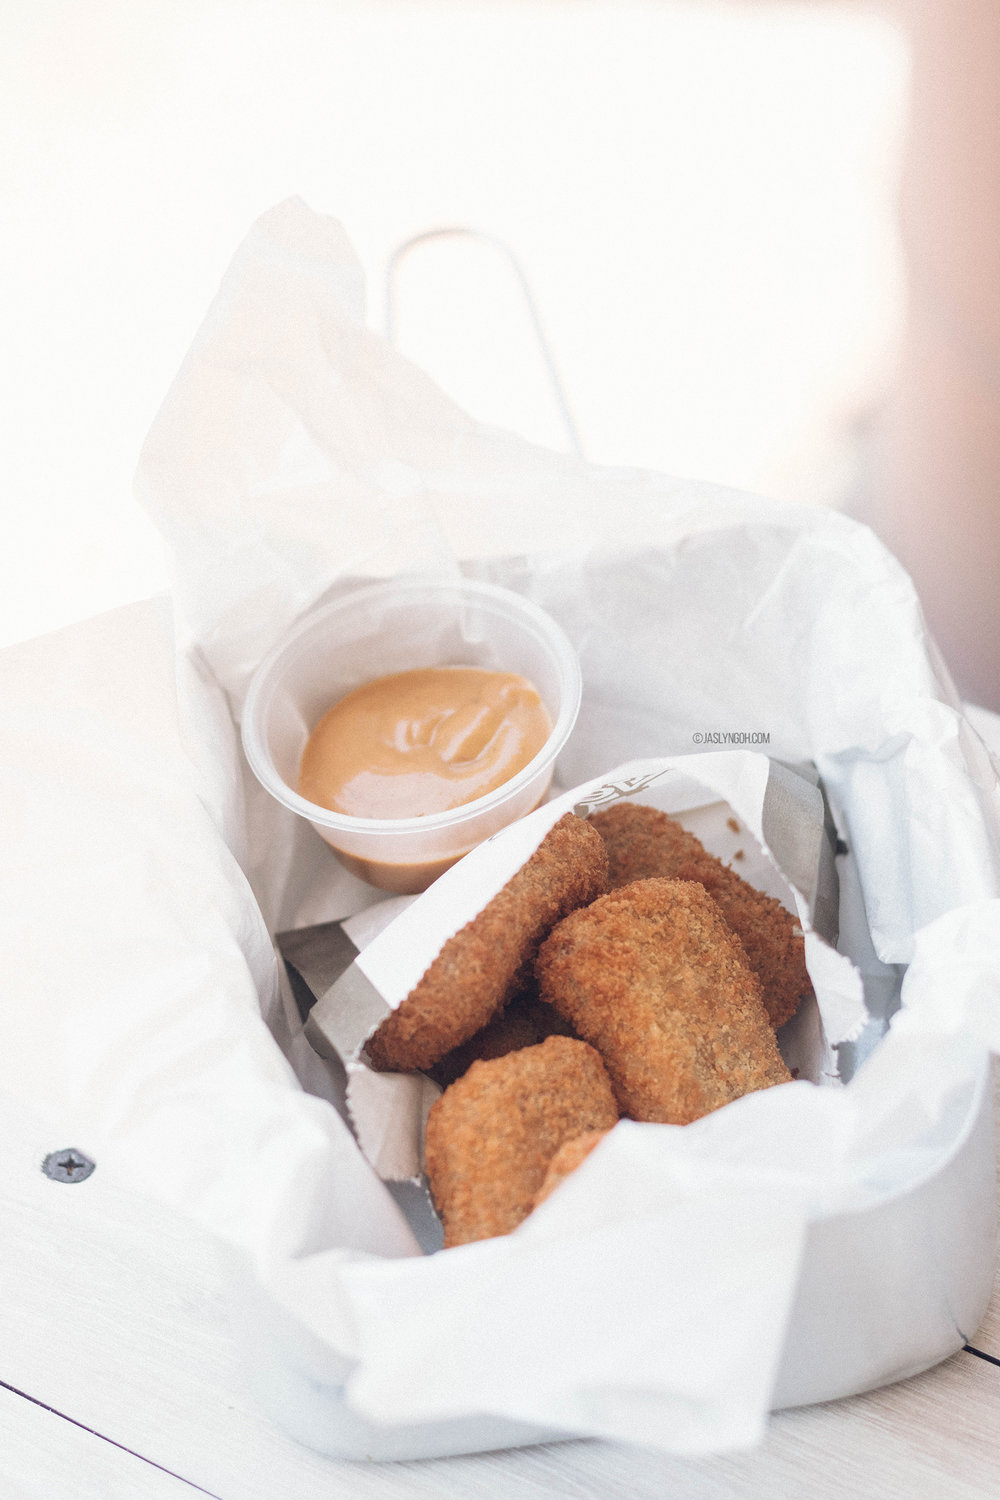 Chik'n Nuggets with Dijonnaise (Dijon + Mayonnaise) Sauce ($5.90)